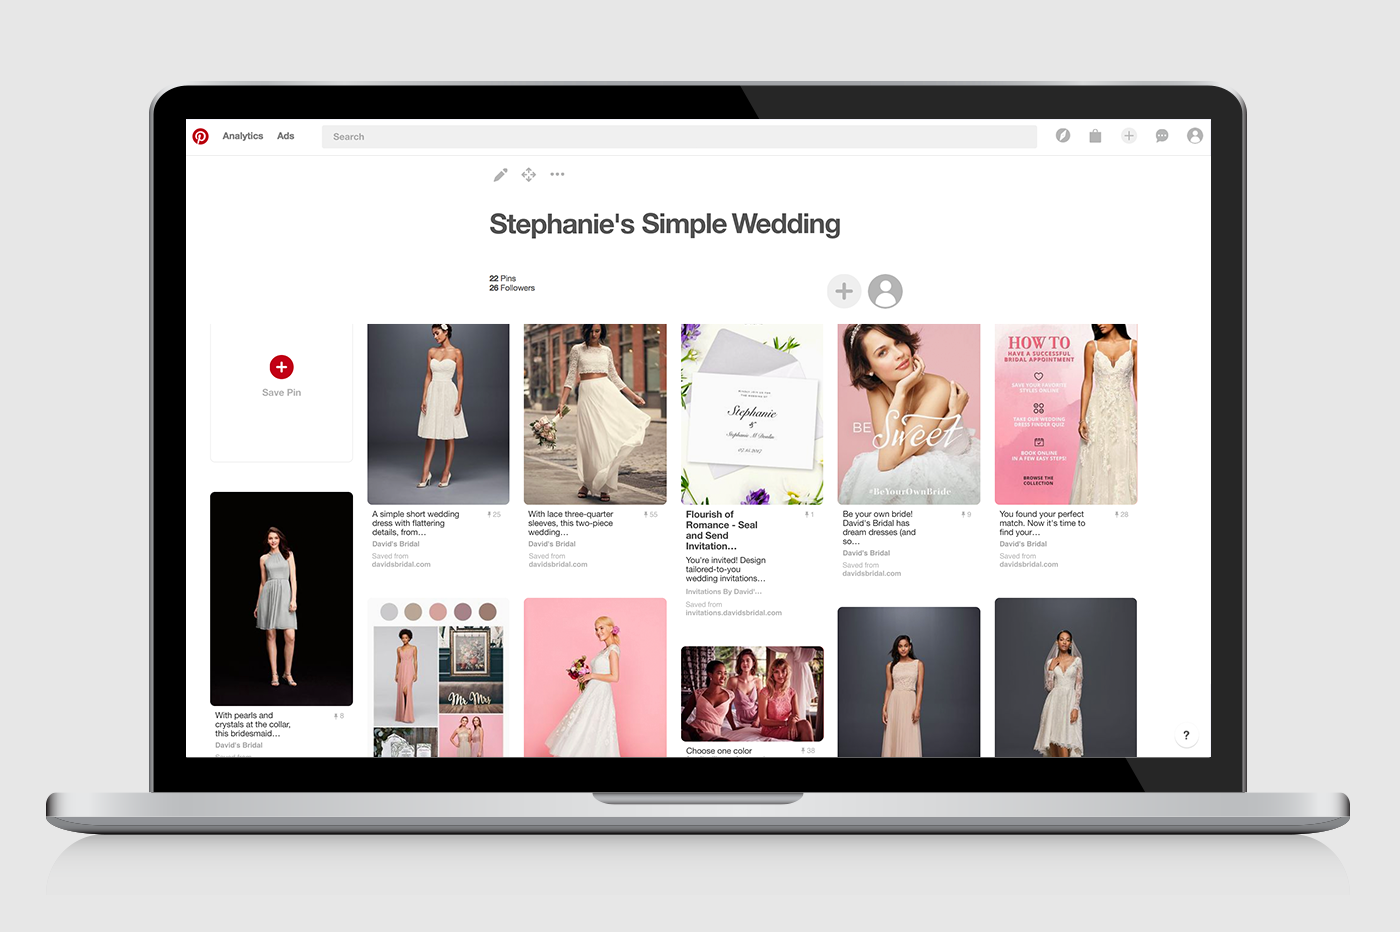 Pinterest Releases New Data on How People Use the Platform for Wedding Plans | Social Media Today